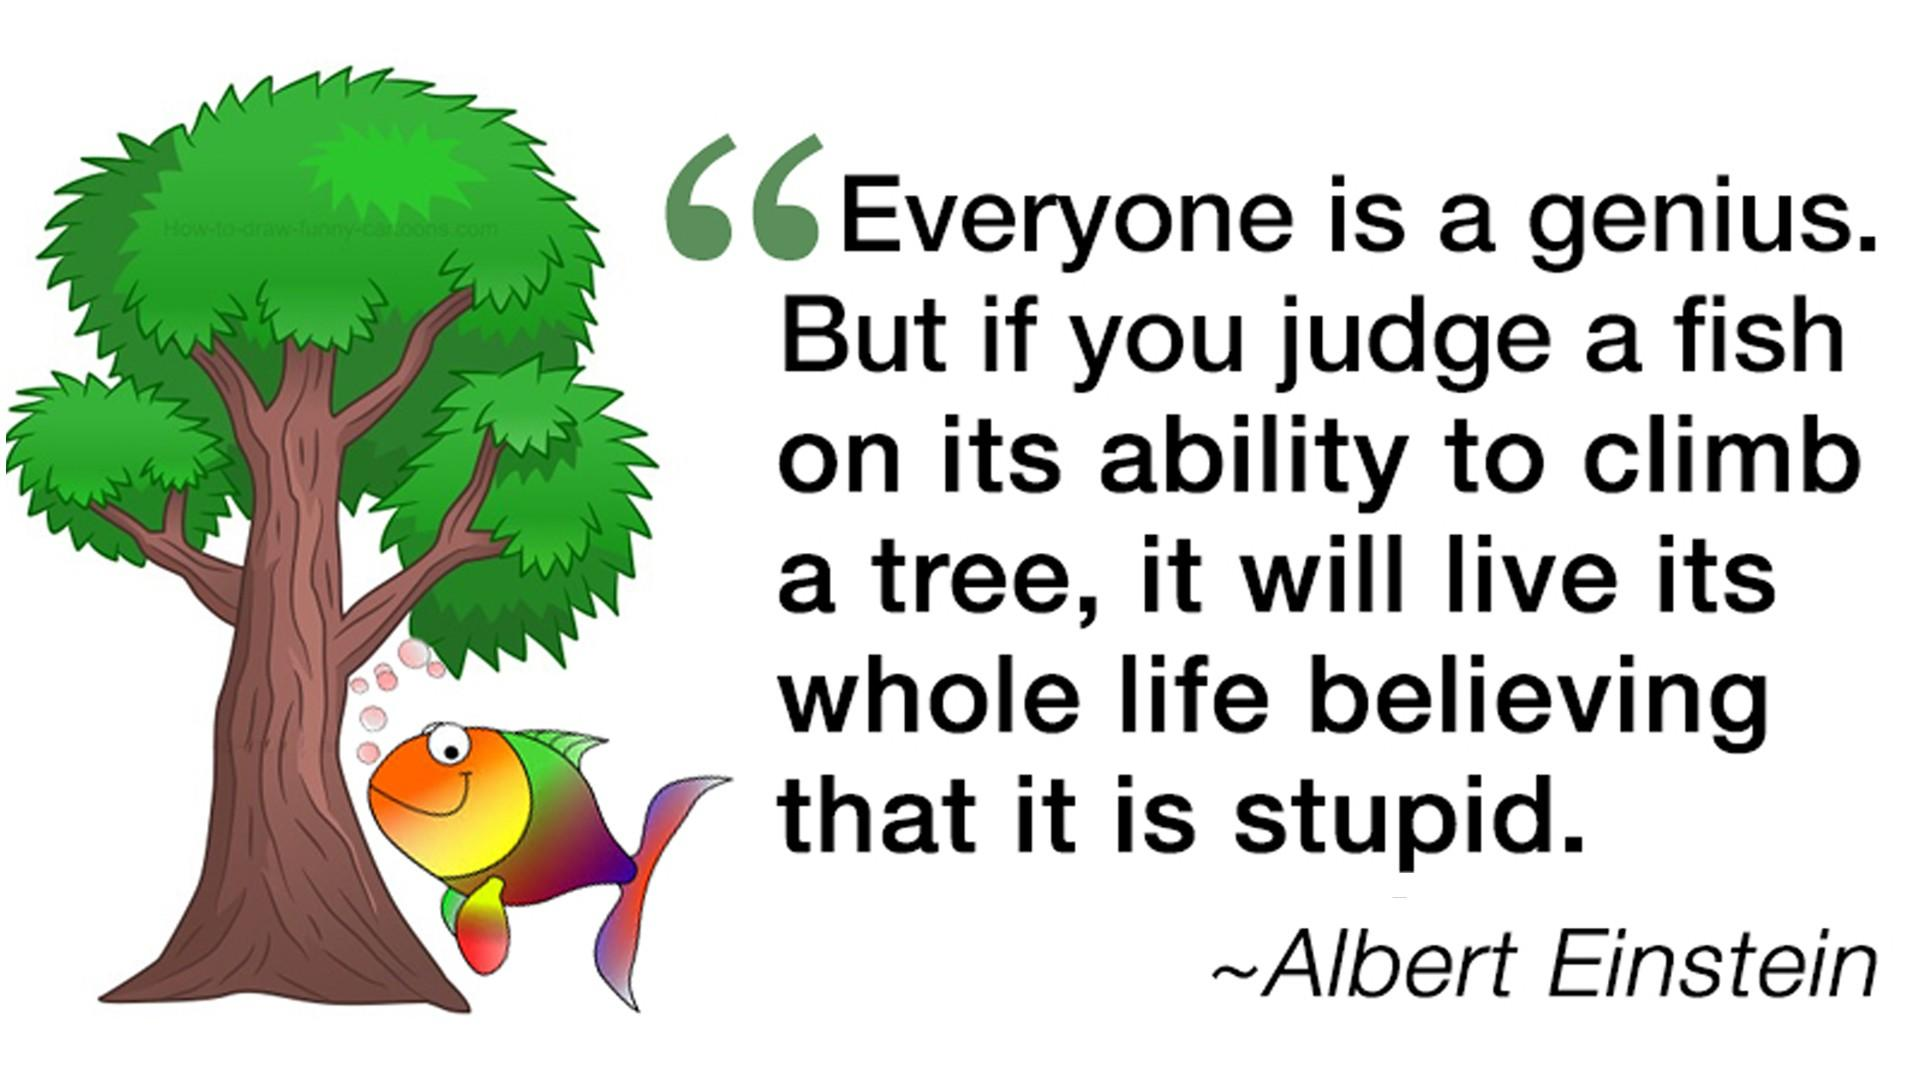 Albert Einstein Quote - Everyone is a genius. But if you judge a fish on its ability to climb a tree, it will live its whole life believing that it is stupid